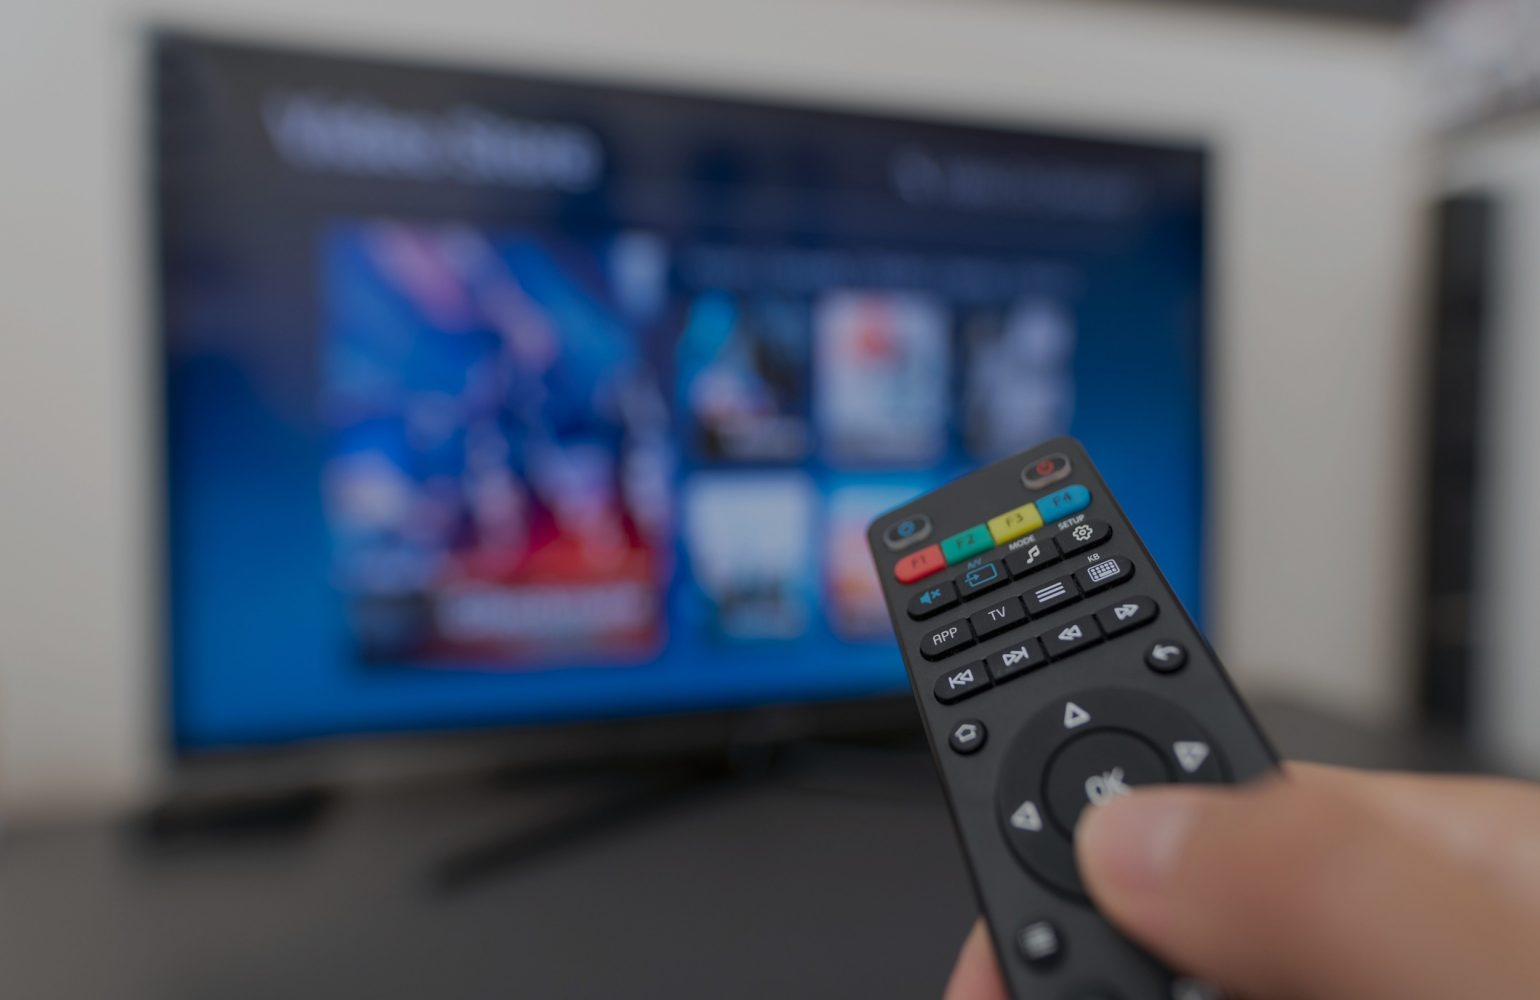 Leading digital media outlets, digital and media rights activists, prominent journalists and opinion makers, and lawyers deem PEMRA's proposed OTT and 'web TV' policy 'unacceptable' in its current form.